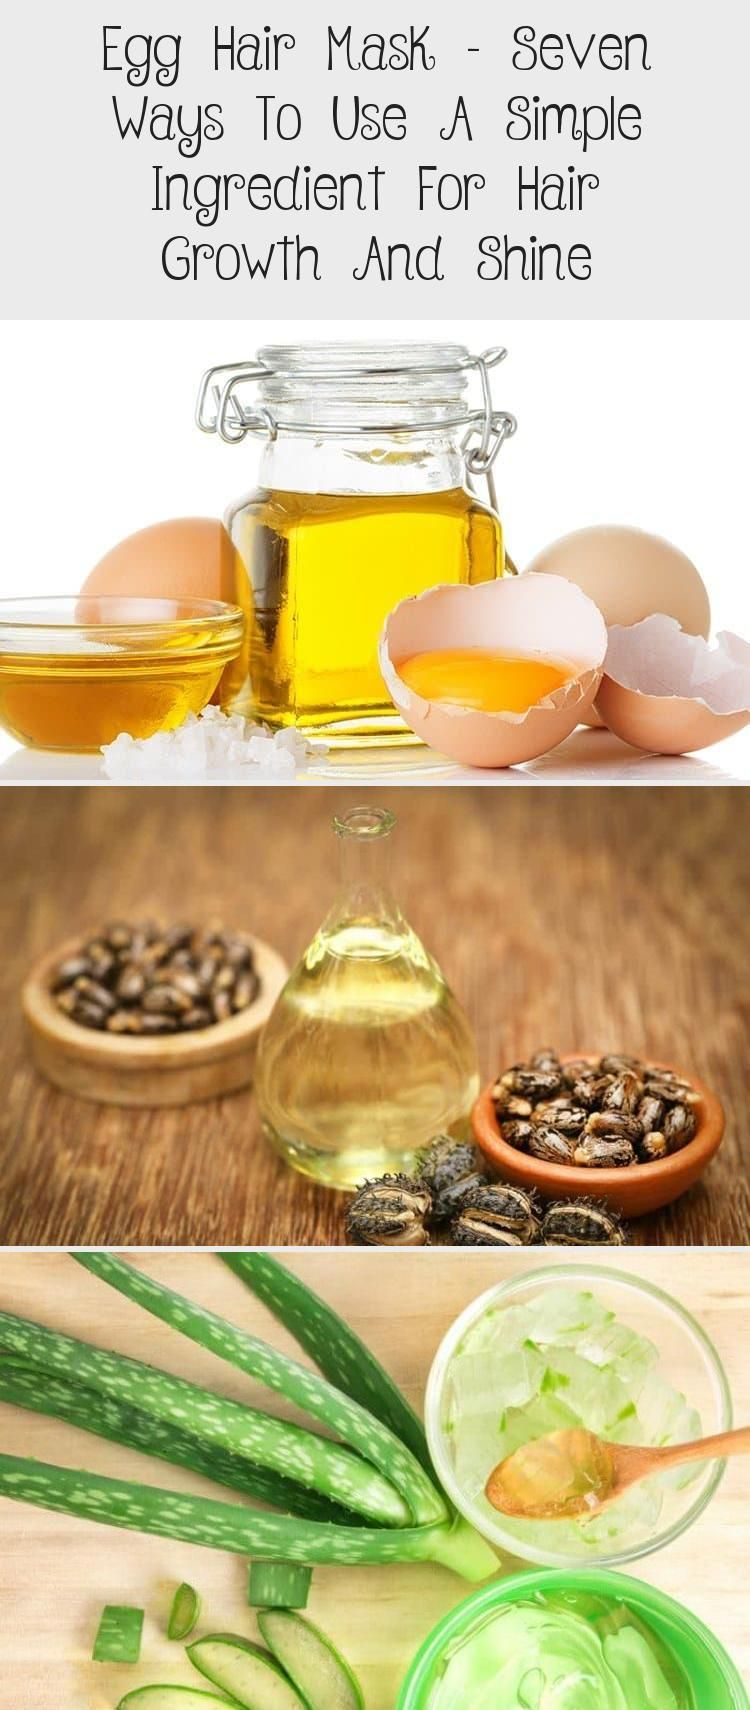 Hair Growth Supplement} and Egg Hair Mask – Seven Ways To Use A Simple Ingredient For Hair Growth And Shine #hairgrowthRecipes #hairgrowthVitamins #hairgrowthOnion #hairgrowthTreatment #Sulfur8hairgrowth